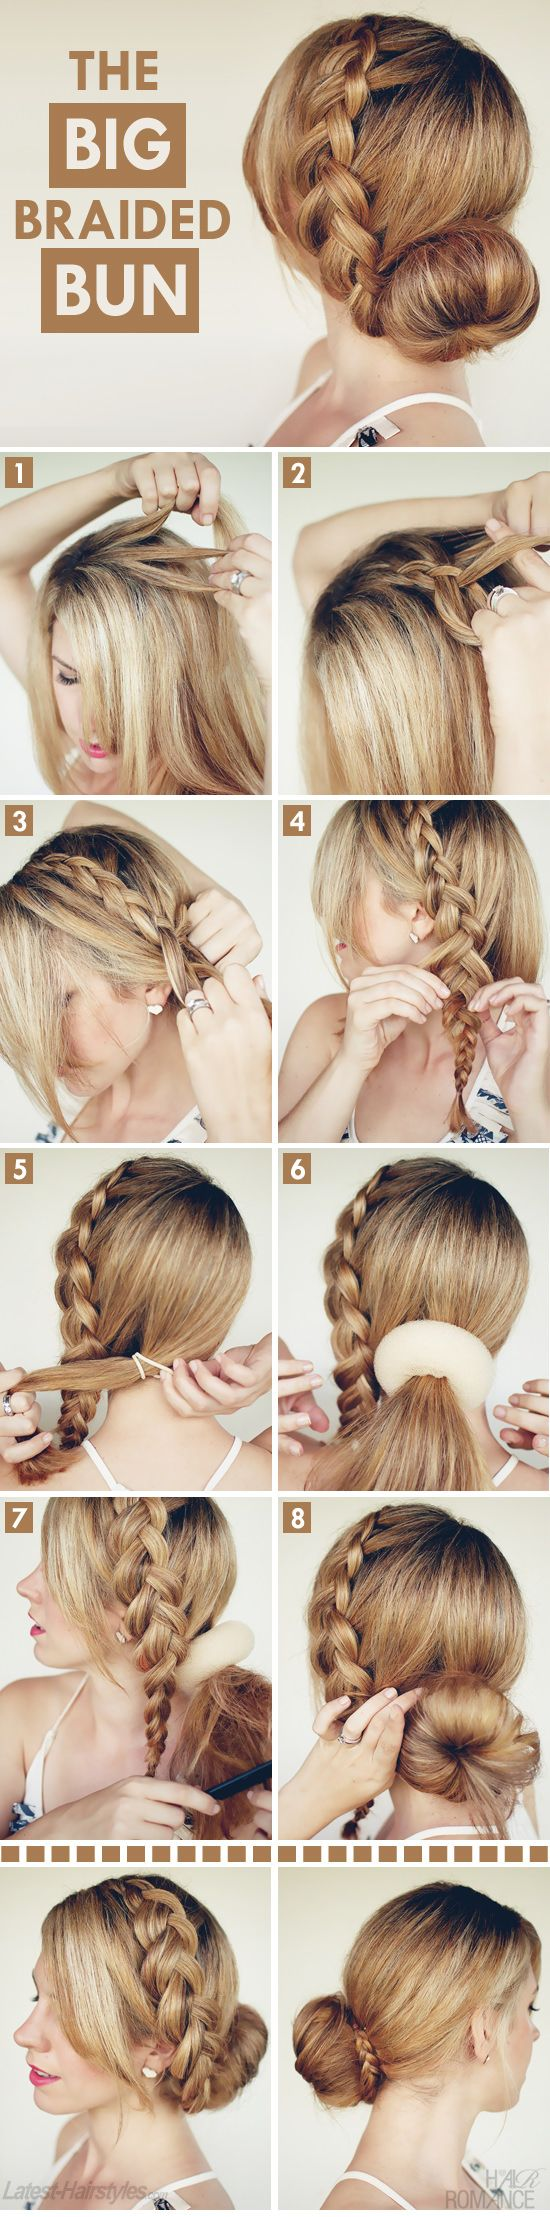 Go big or go home: the Big Braided Bun.